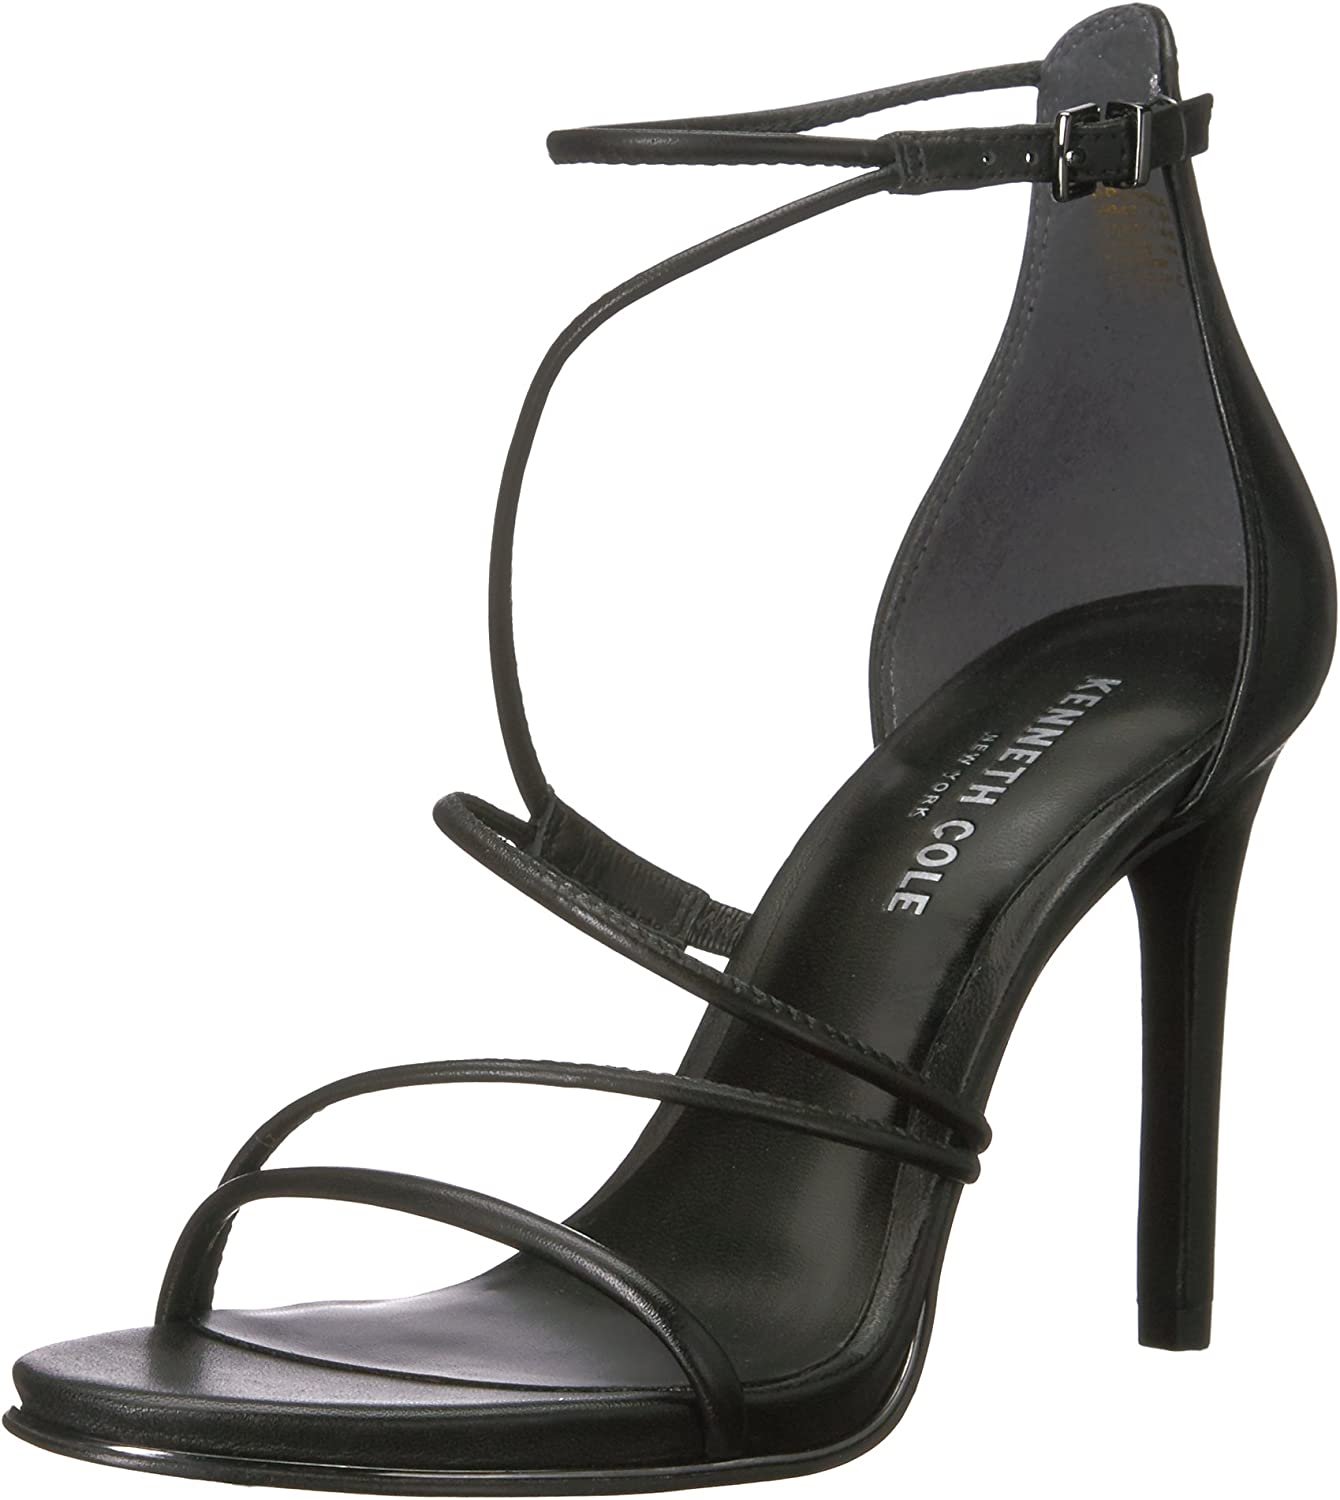 Kenneth Cole New York Women's Bryanna Strappy Leather Dress Sandal